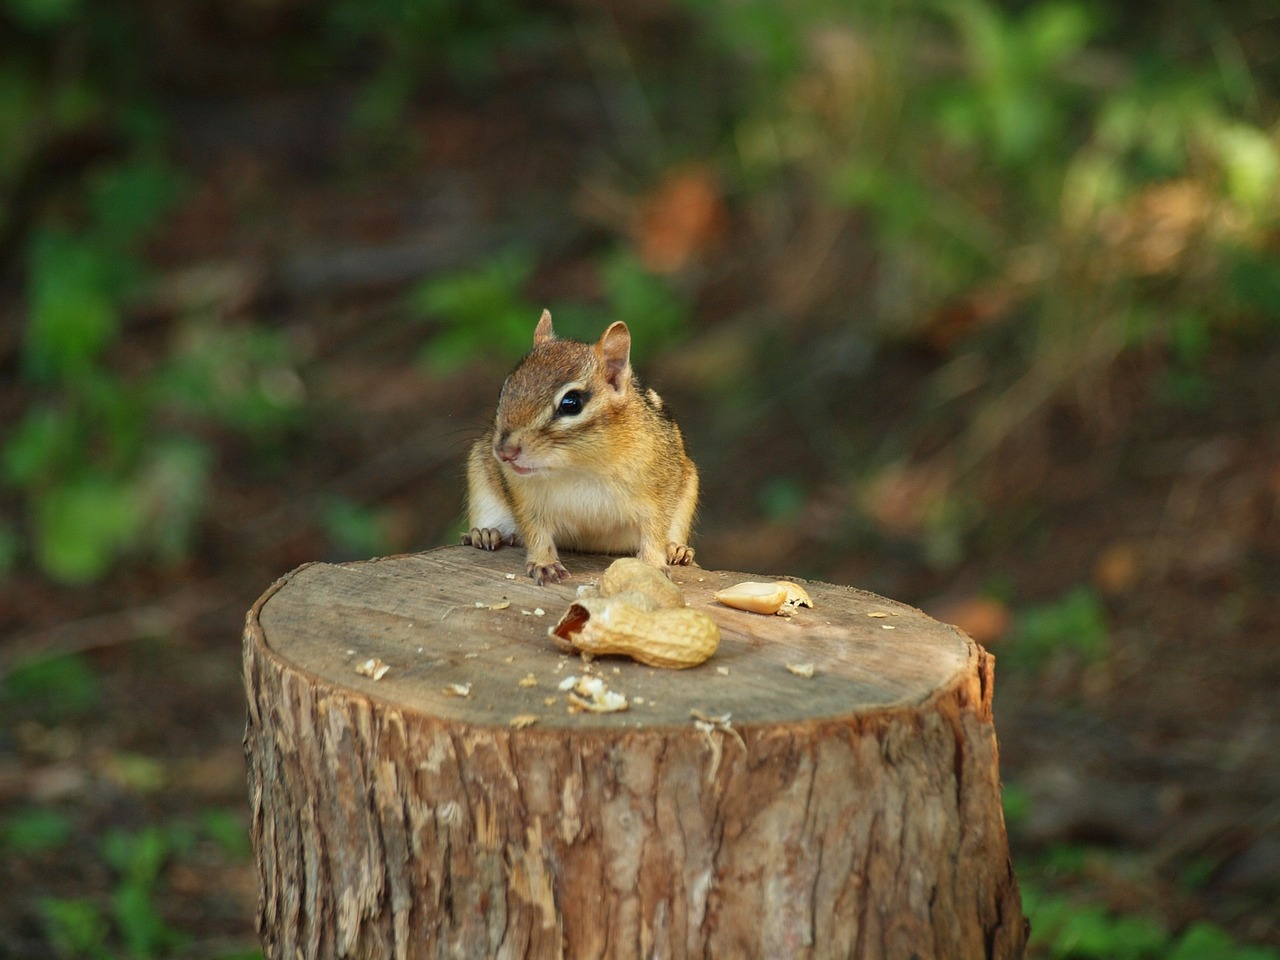 Siberian chipmunks in the Sonian Forest near Brussels